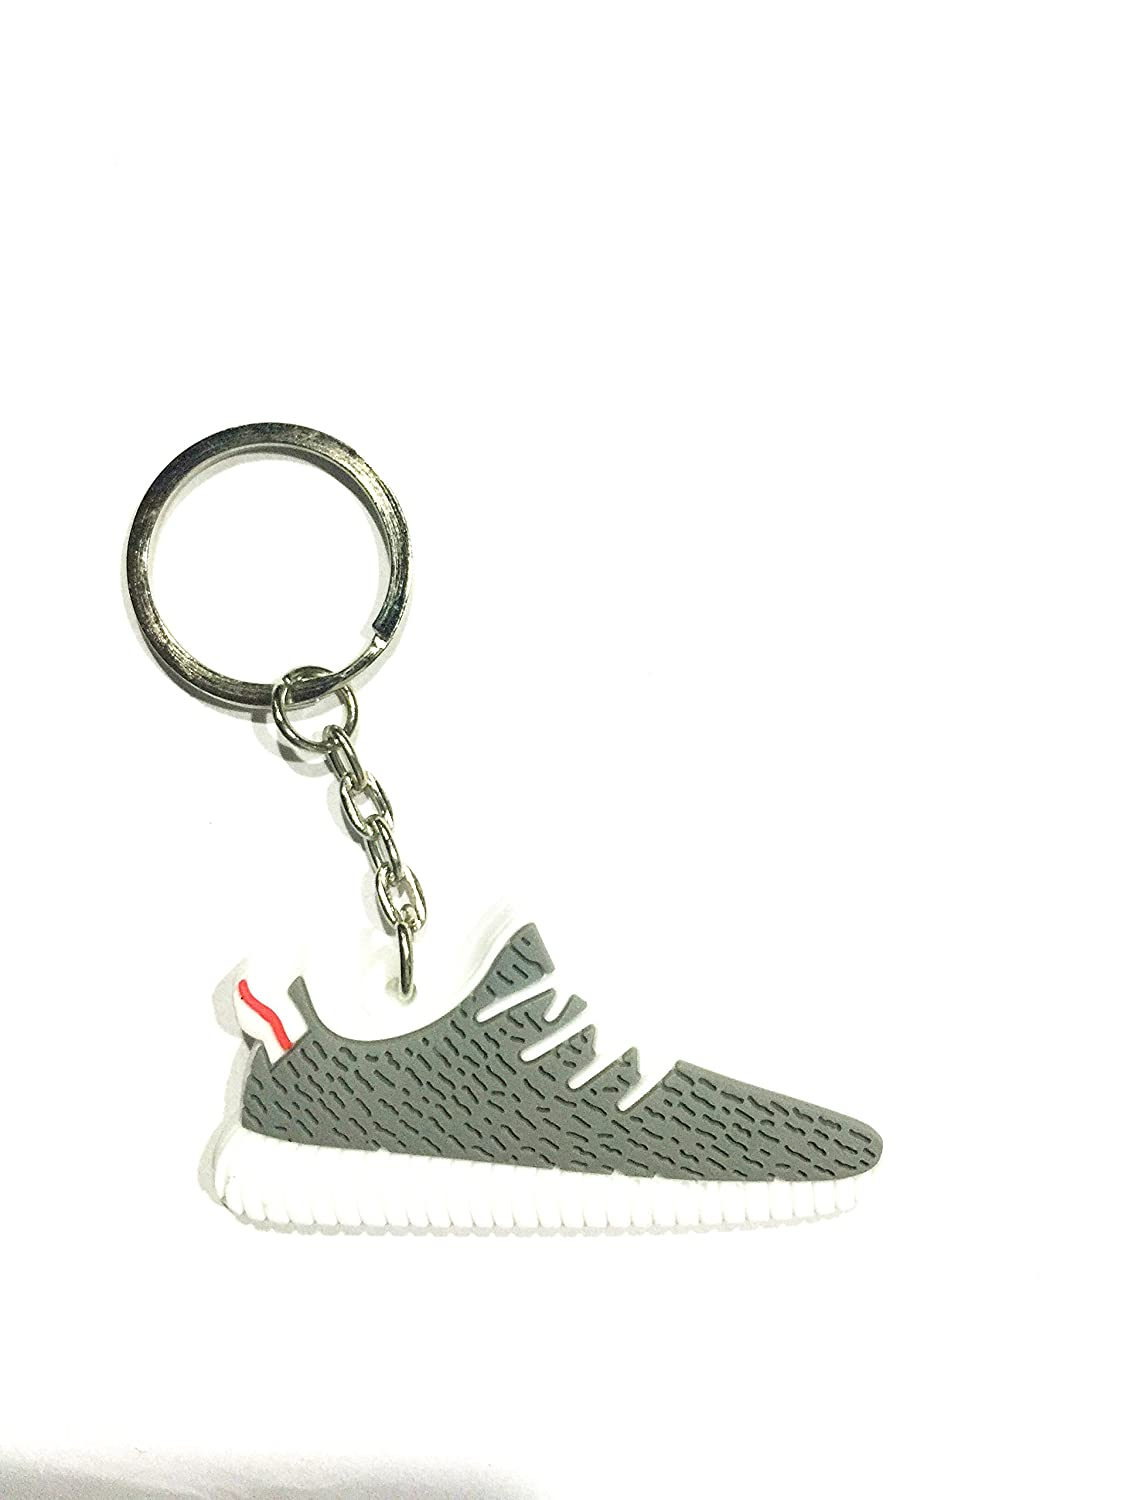 Amazon.com : Cute Silicone Yeezy 350 Boost Key Chain Sneaker ...